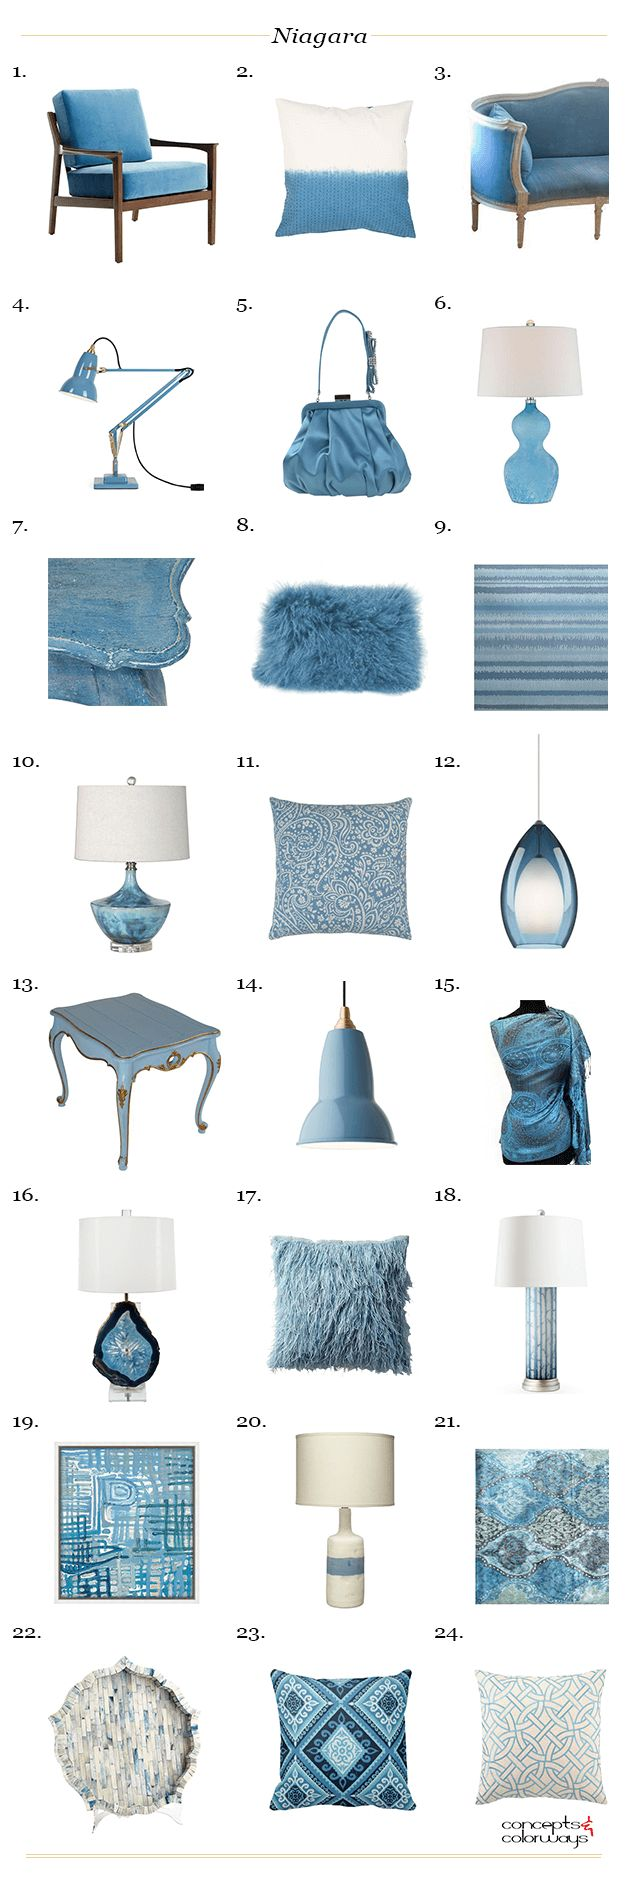 pantone niagara interior design product roundup, get the look, dusty blue, slate blue, smoky blue, denim blue, french blue